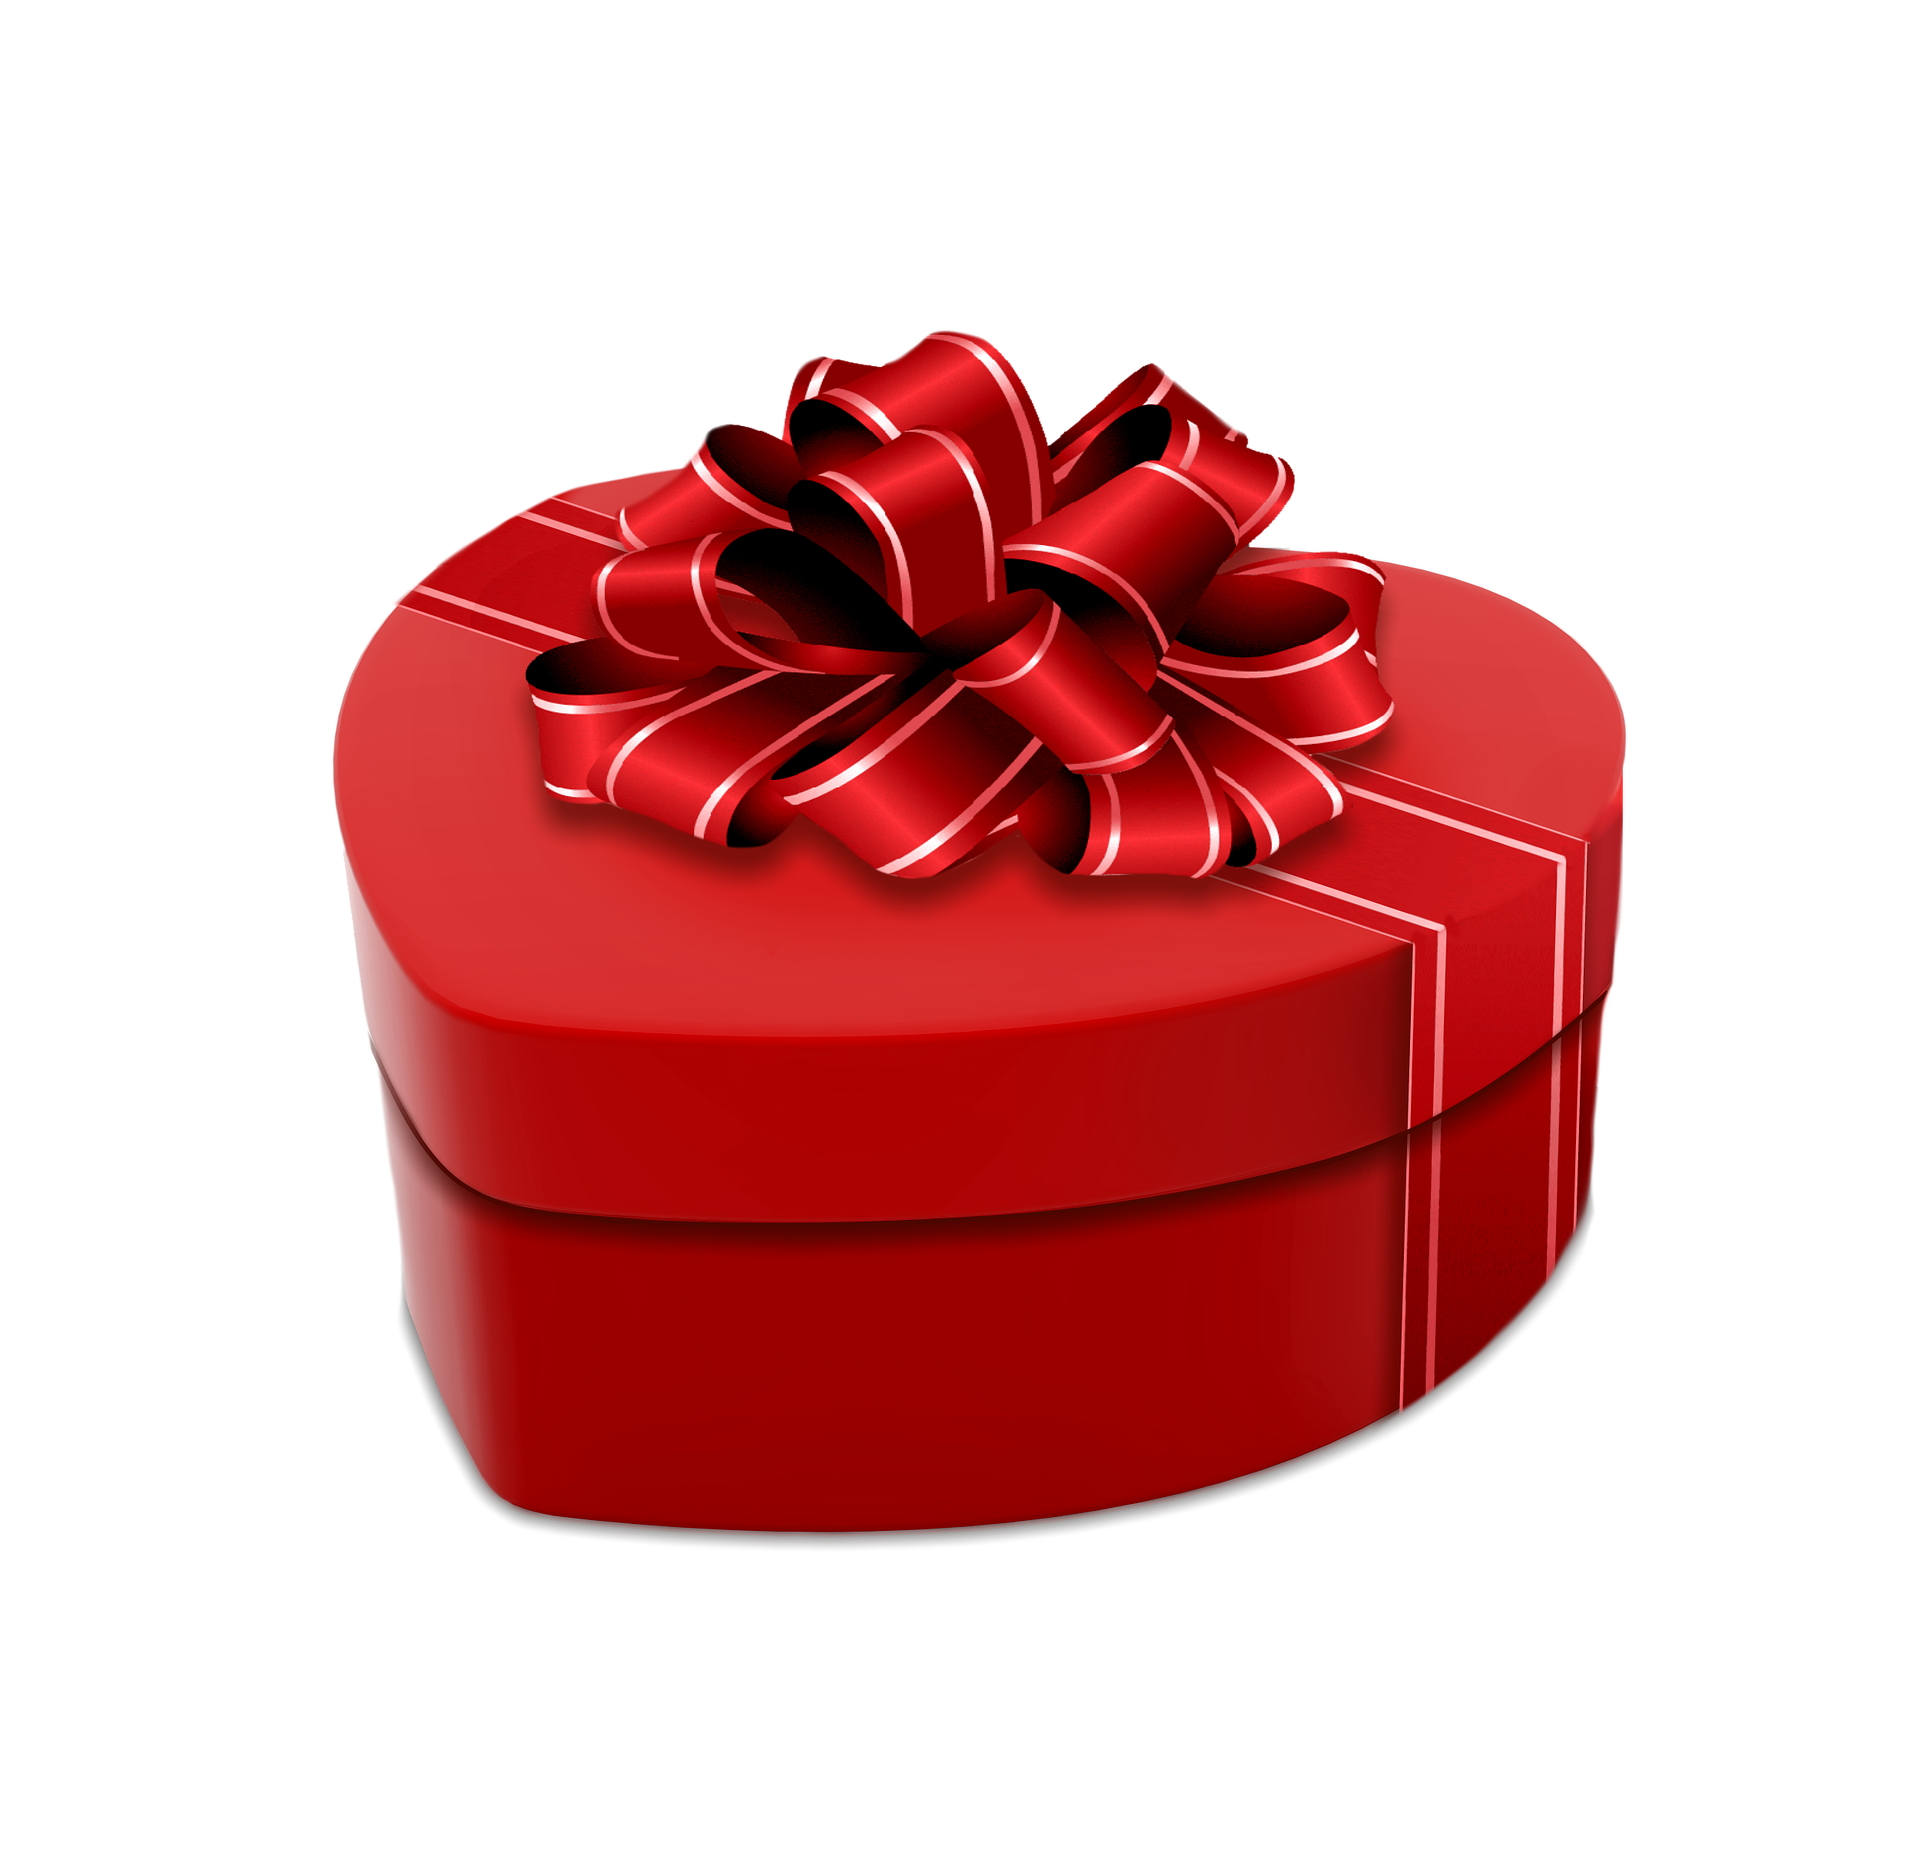 gift-2919003_1920.png